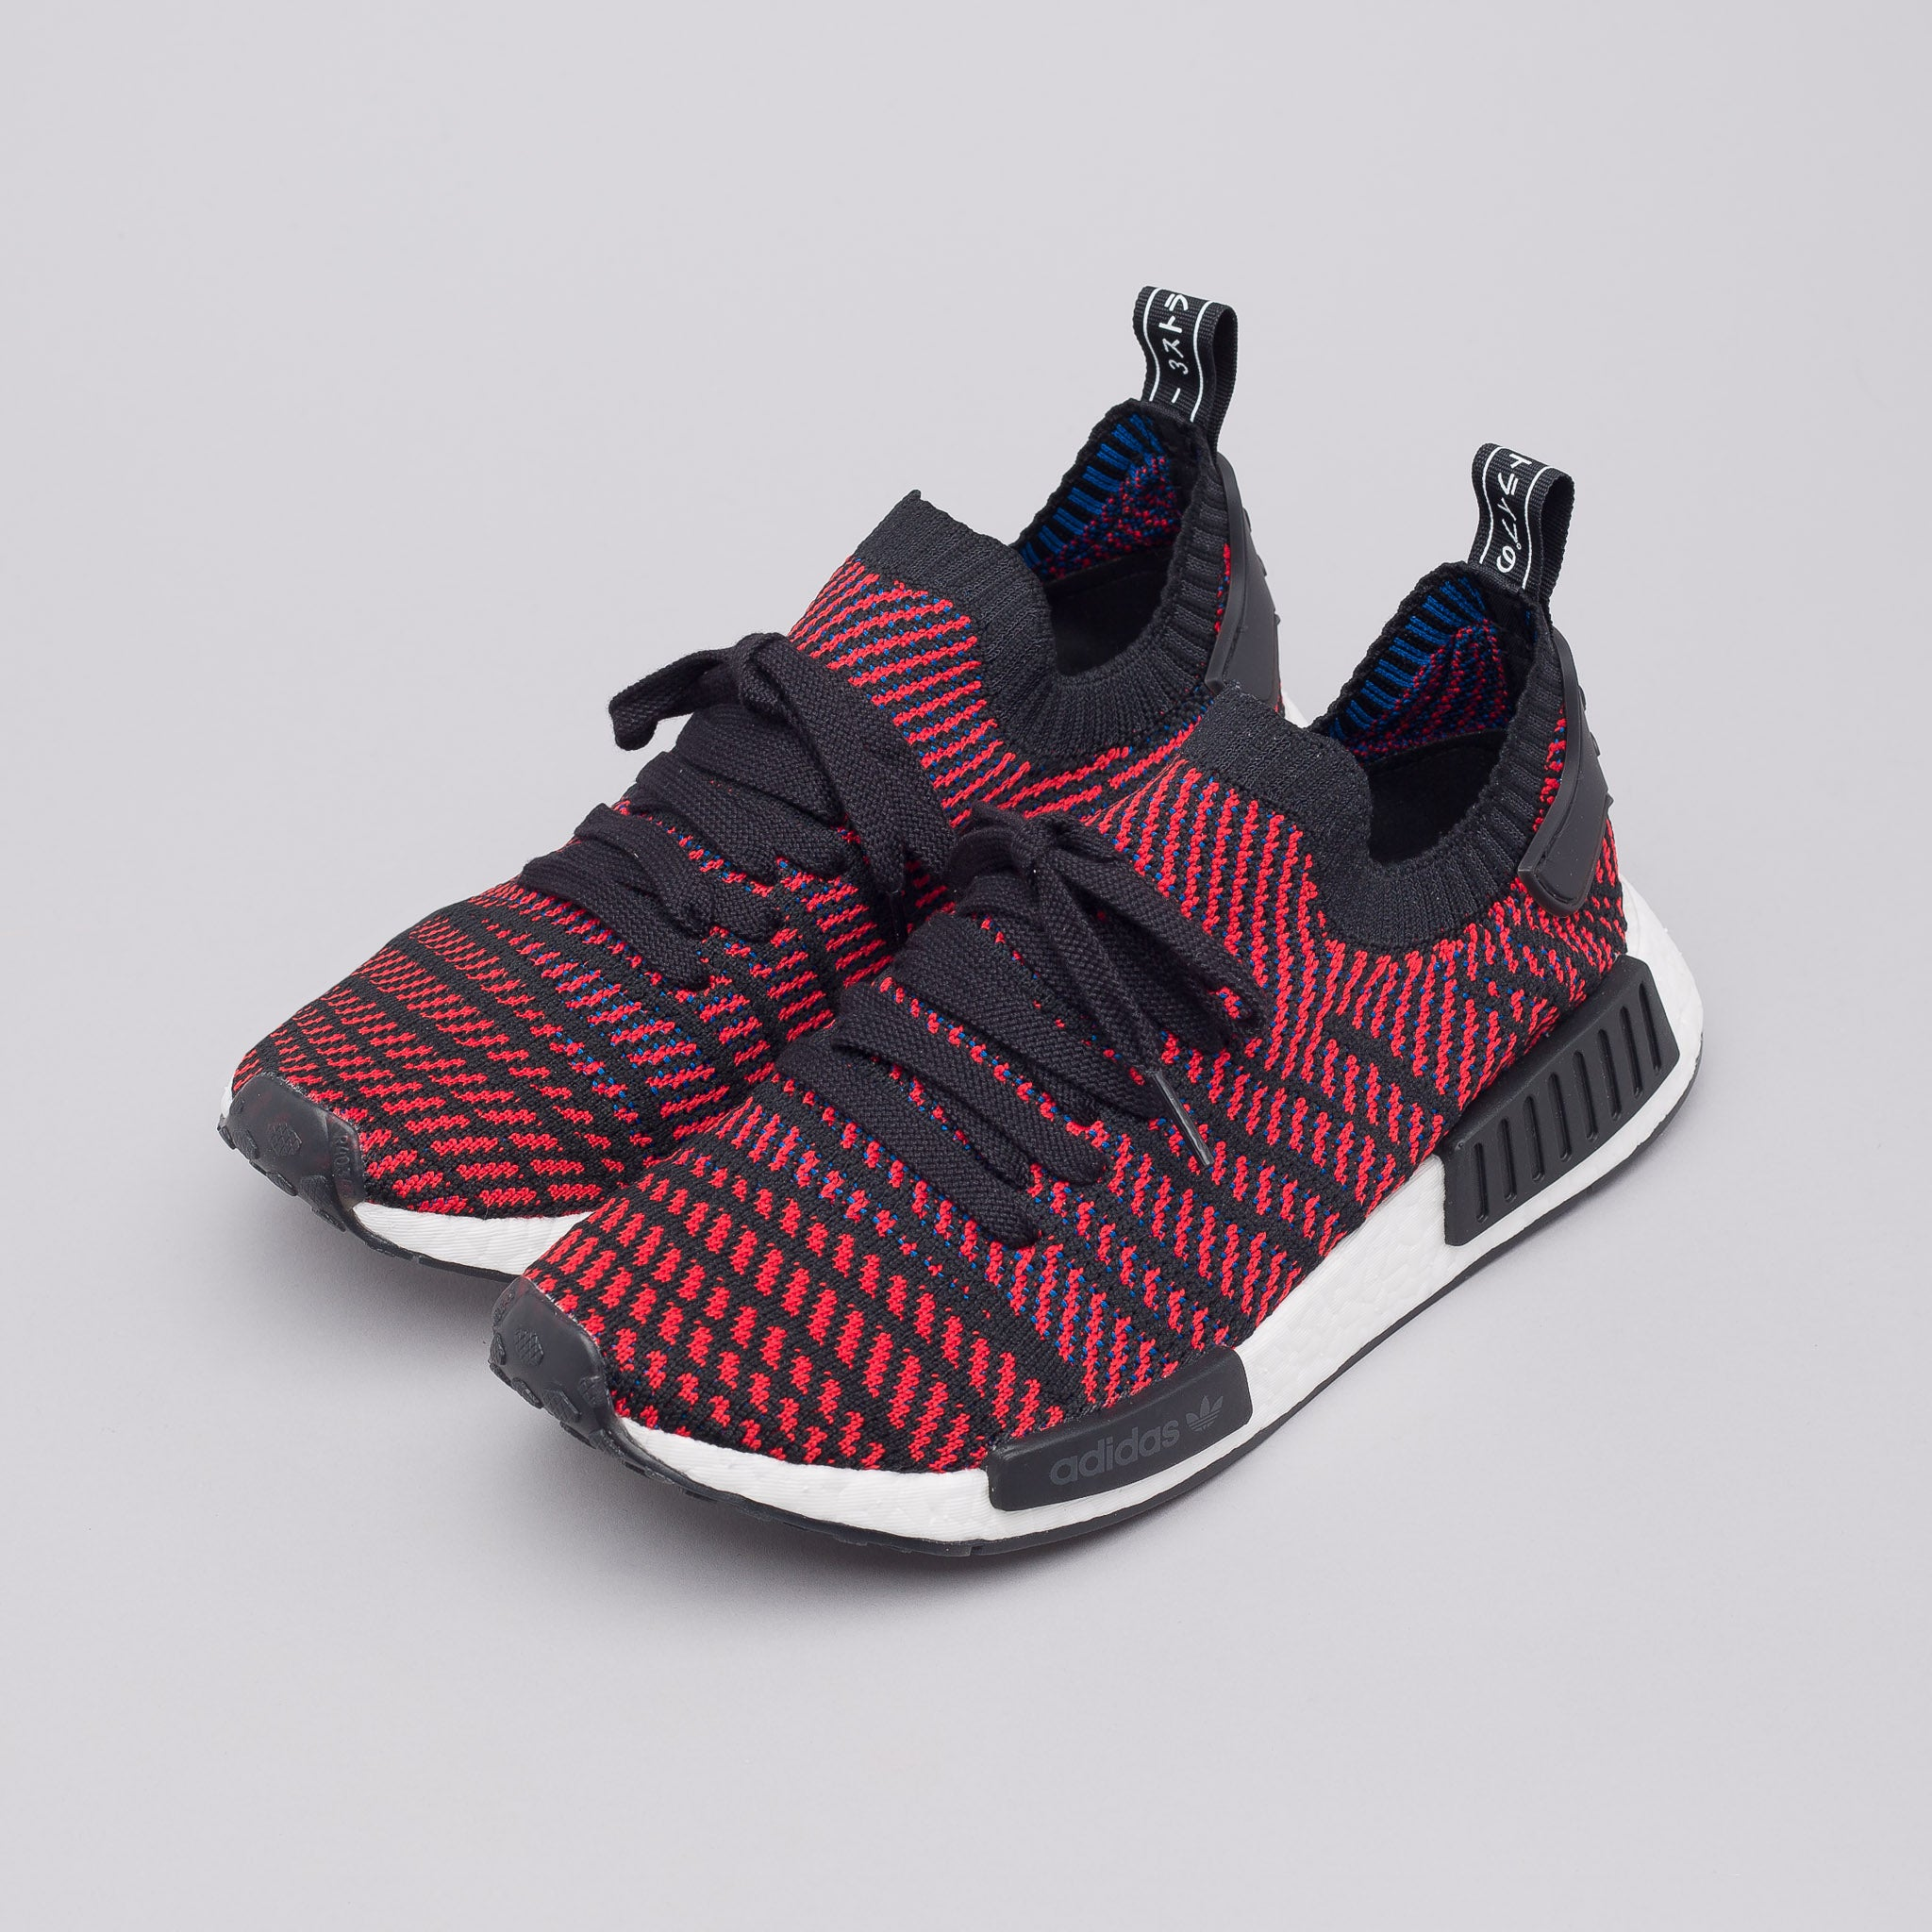 USED ADIDAS NMD R1 RUNNER ORIGINALS RED BLACK MENS